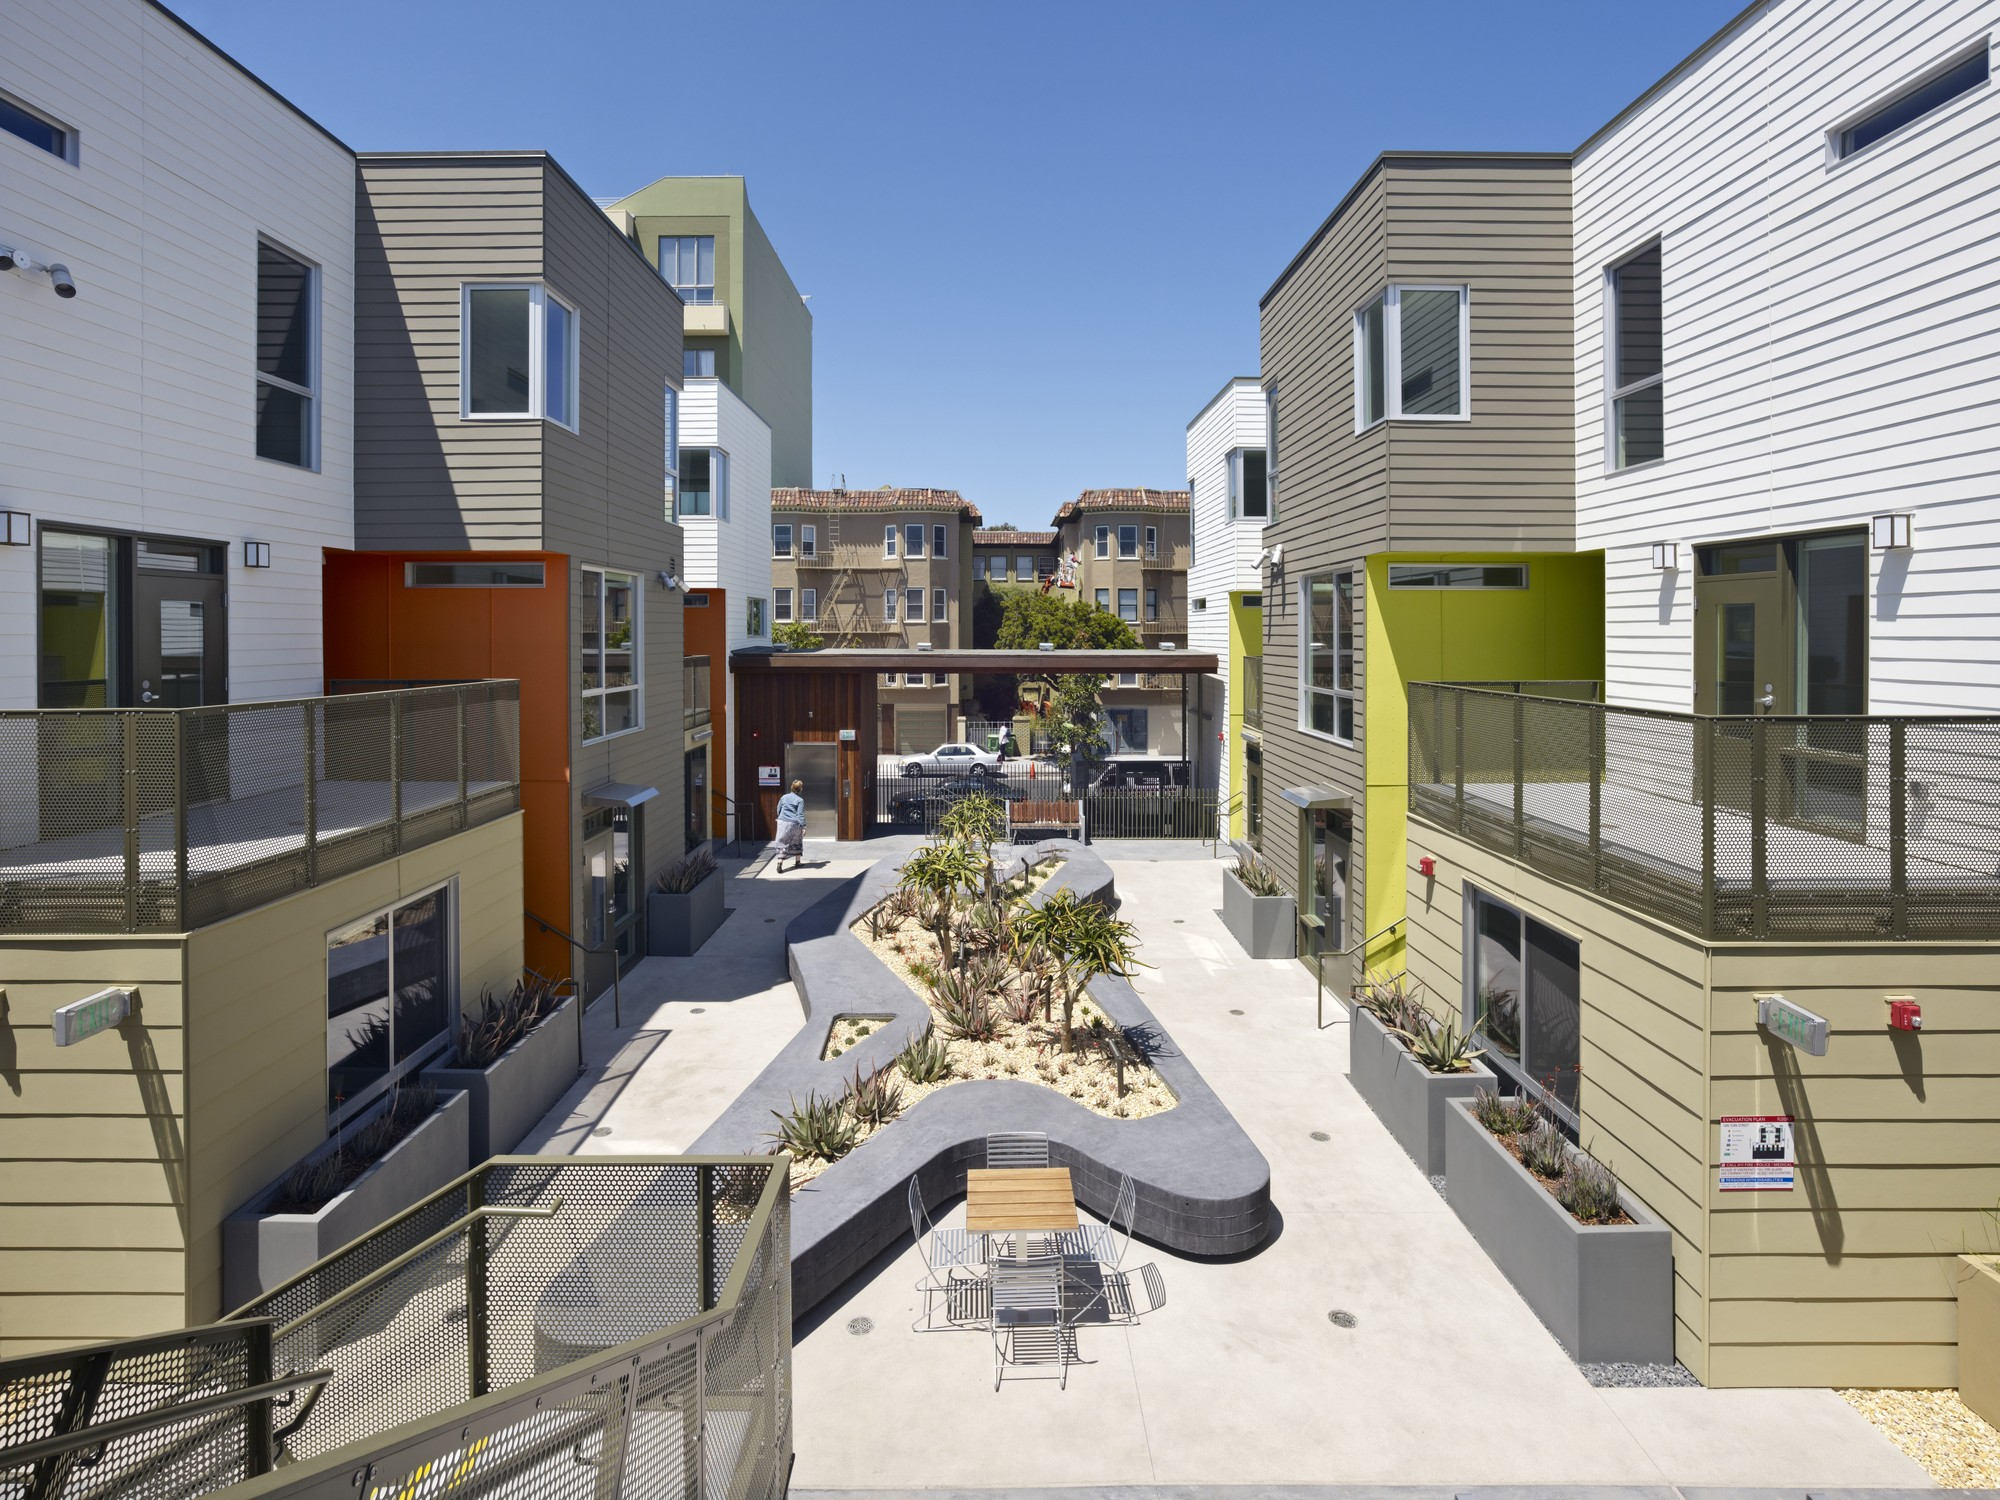 Used Cabinets For Sale >> Fillmore Park / David Baker + Partners Architects | ArchDaily